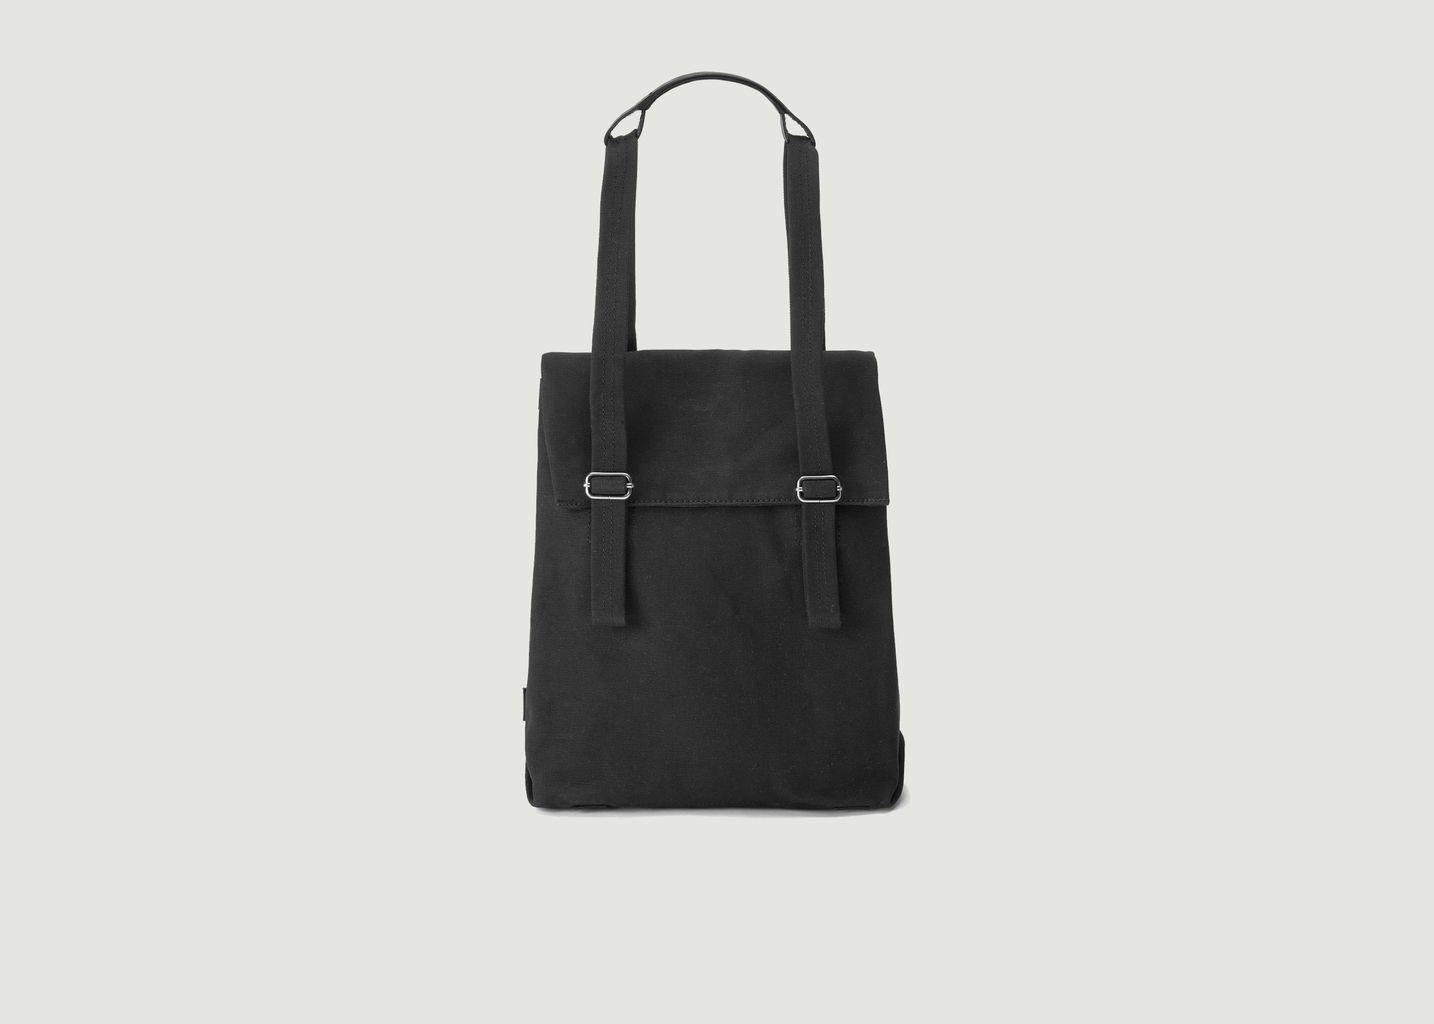 Sac Flap tote  - Qwstion